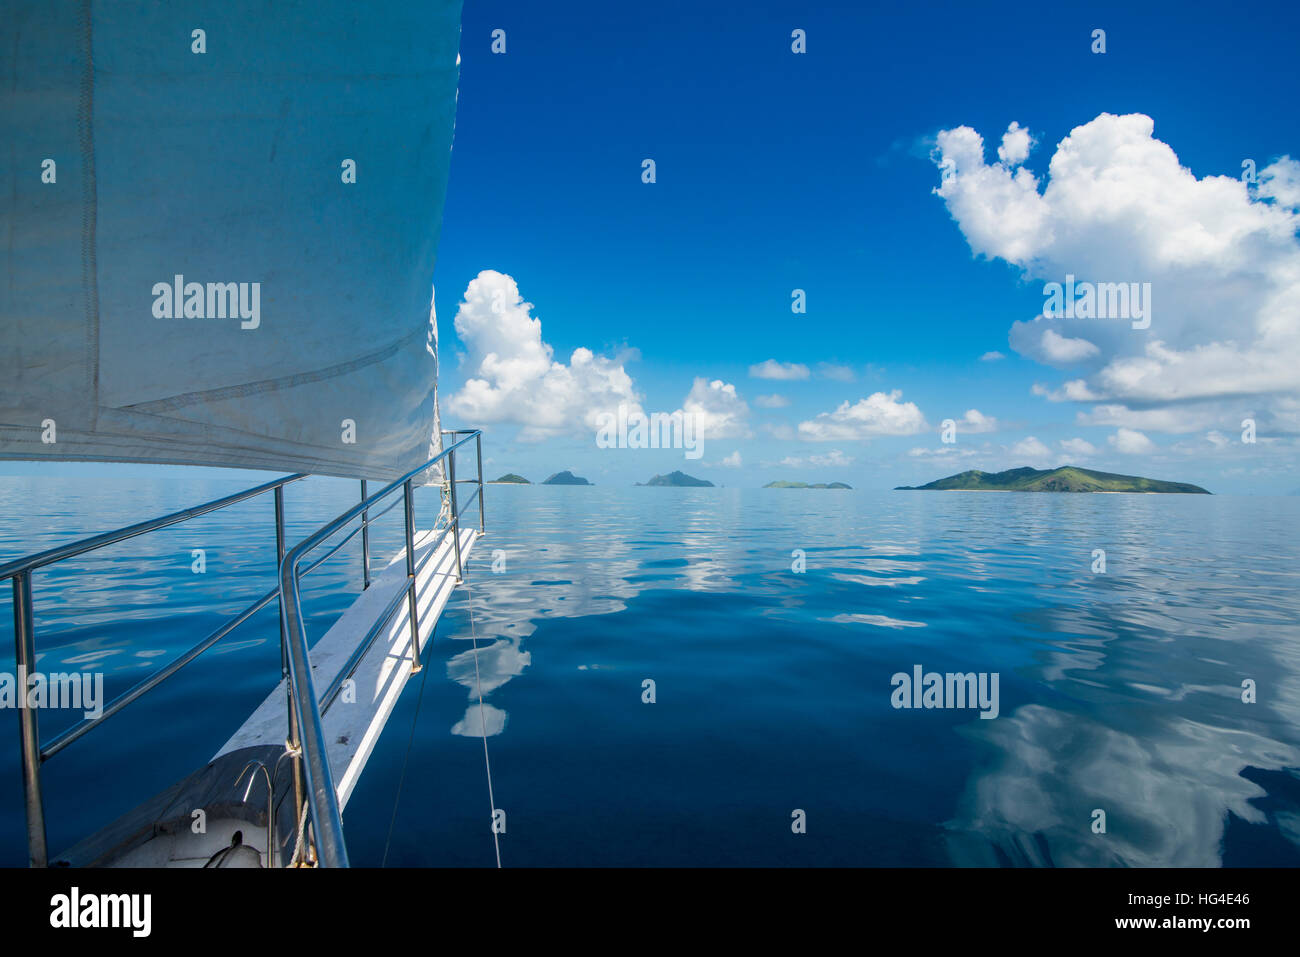 Sailing in the very flat waters of the Mamanuca Islands, Fiji, South Pacific - Stock Image